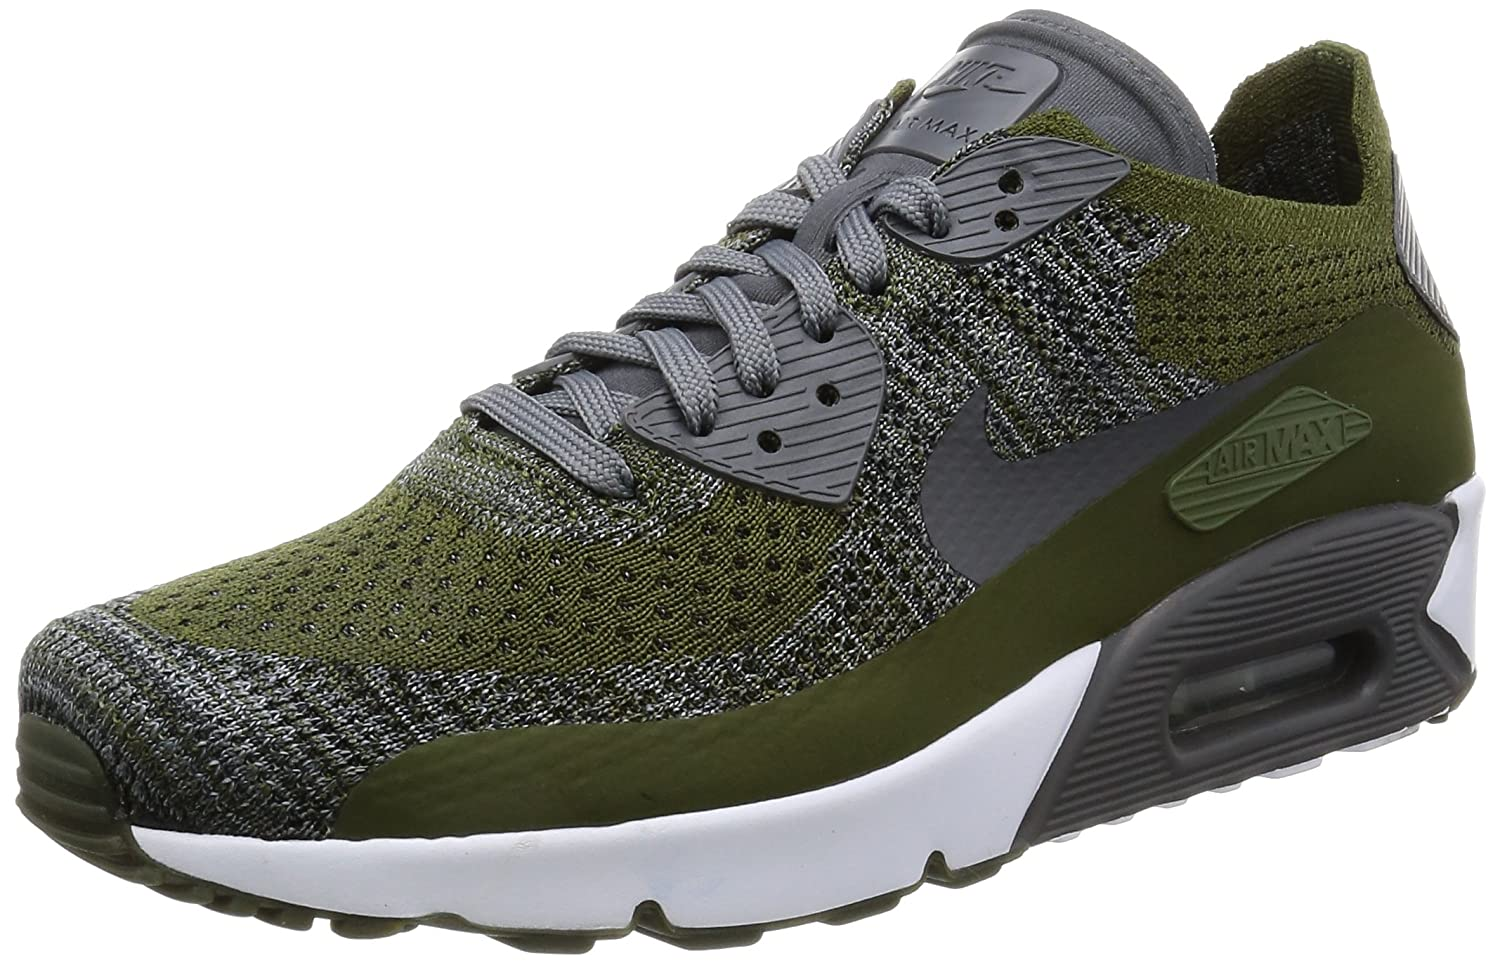 65580a8218de3 Mens Nike Air Max 90 Ultra 2.0 Flyknit  Amazon.co.uk  Shoes   Bags